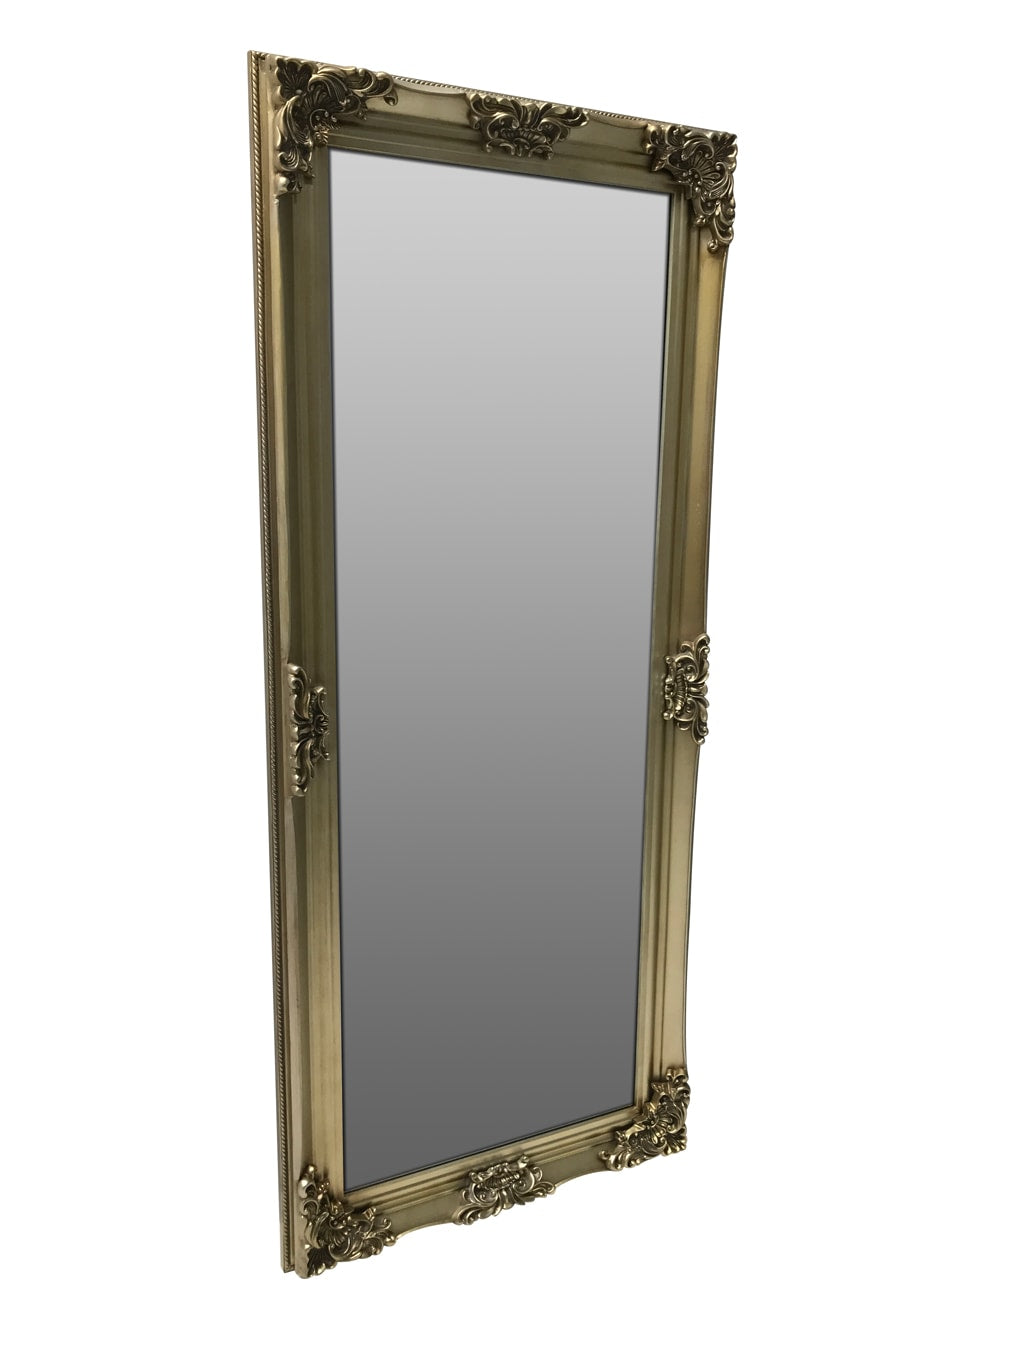 Tall Swept Frame Mirror with Gold Frame, view from right front angle